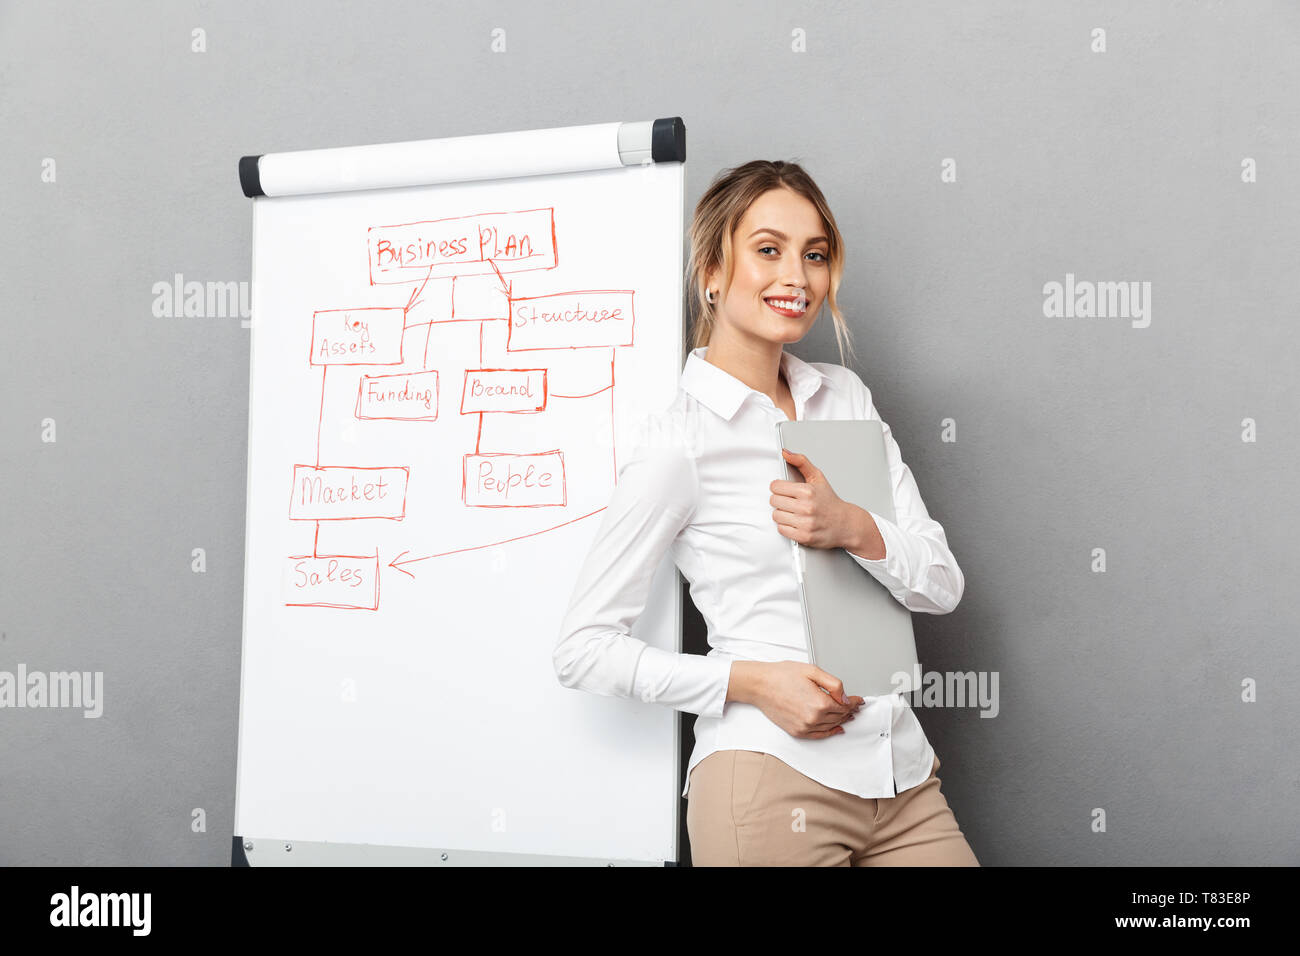 Image of cheerful businesswoman in formal wear using flipchart and laptop while making presentation in the office isolated over gray background - Stock Image